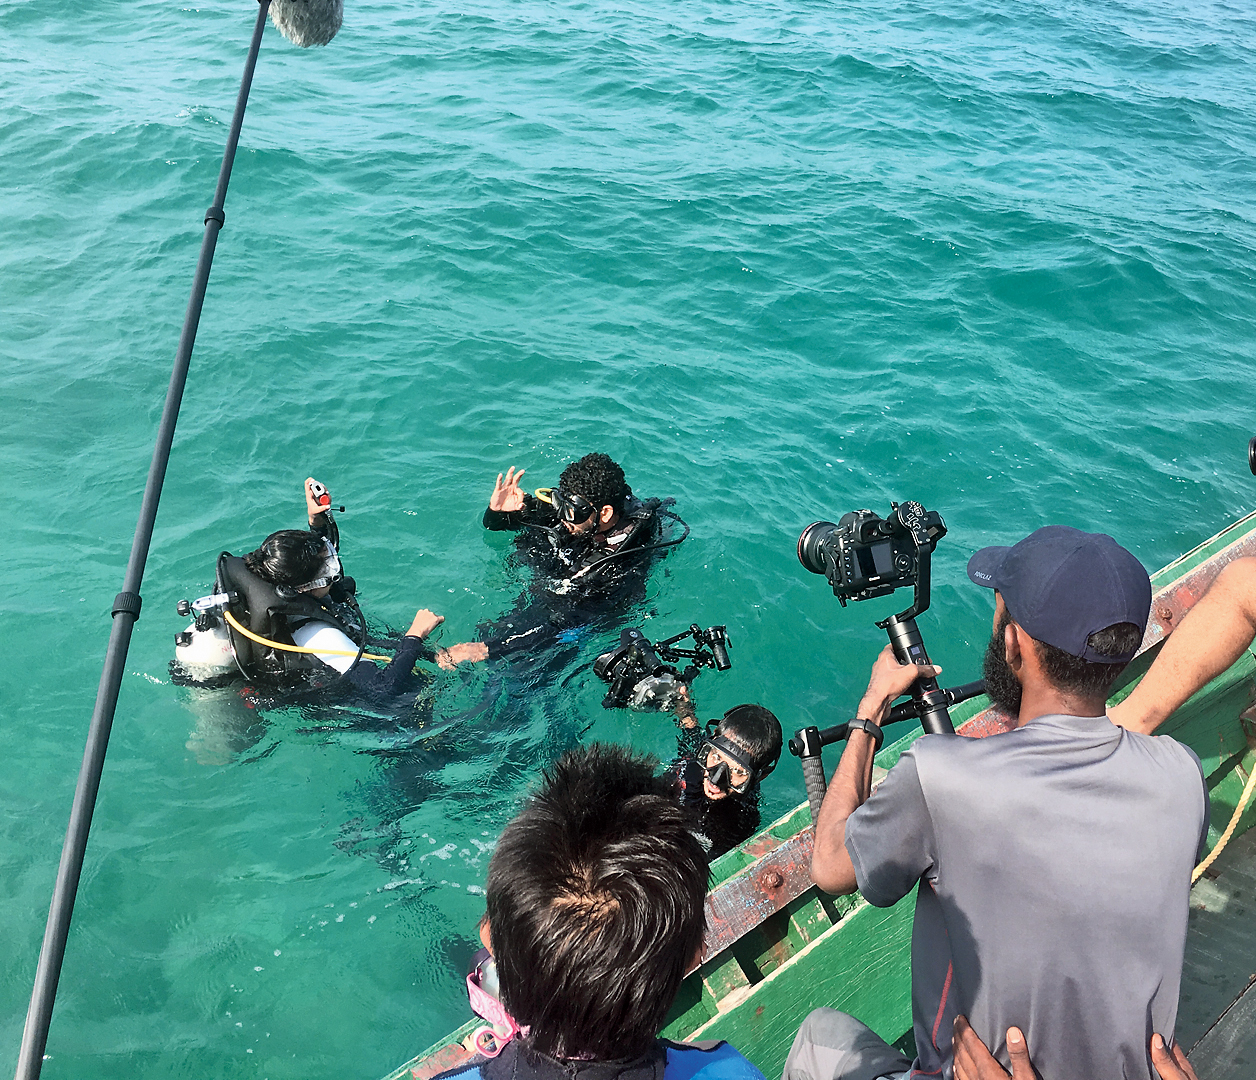 The film crew interviews Mohammed Hussain (gesturing with his right hand) in the Andamans water.